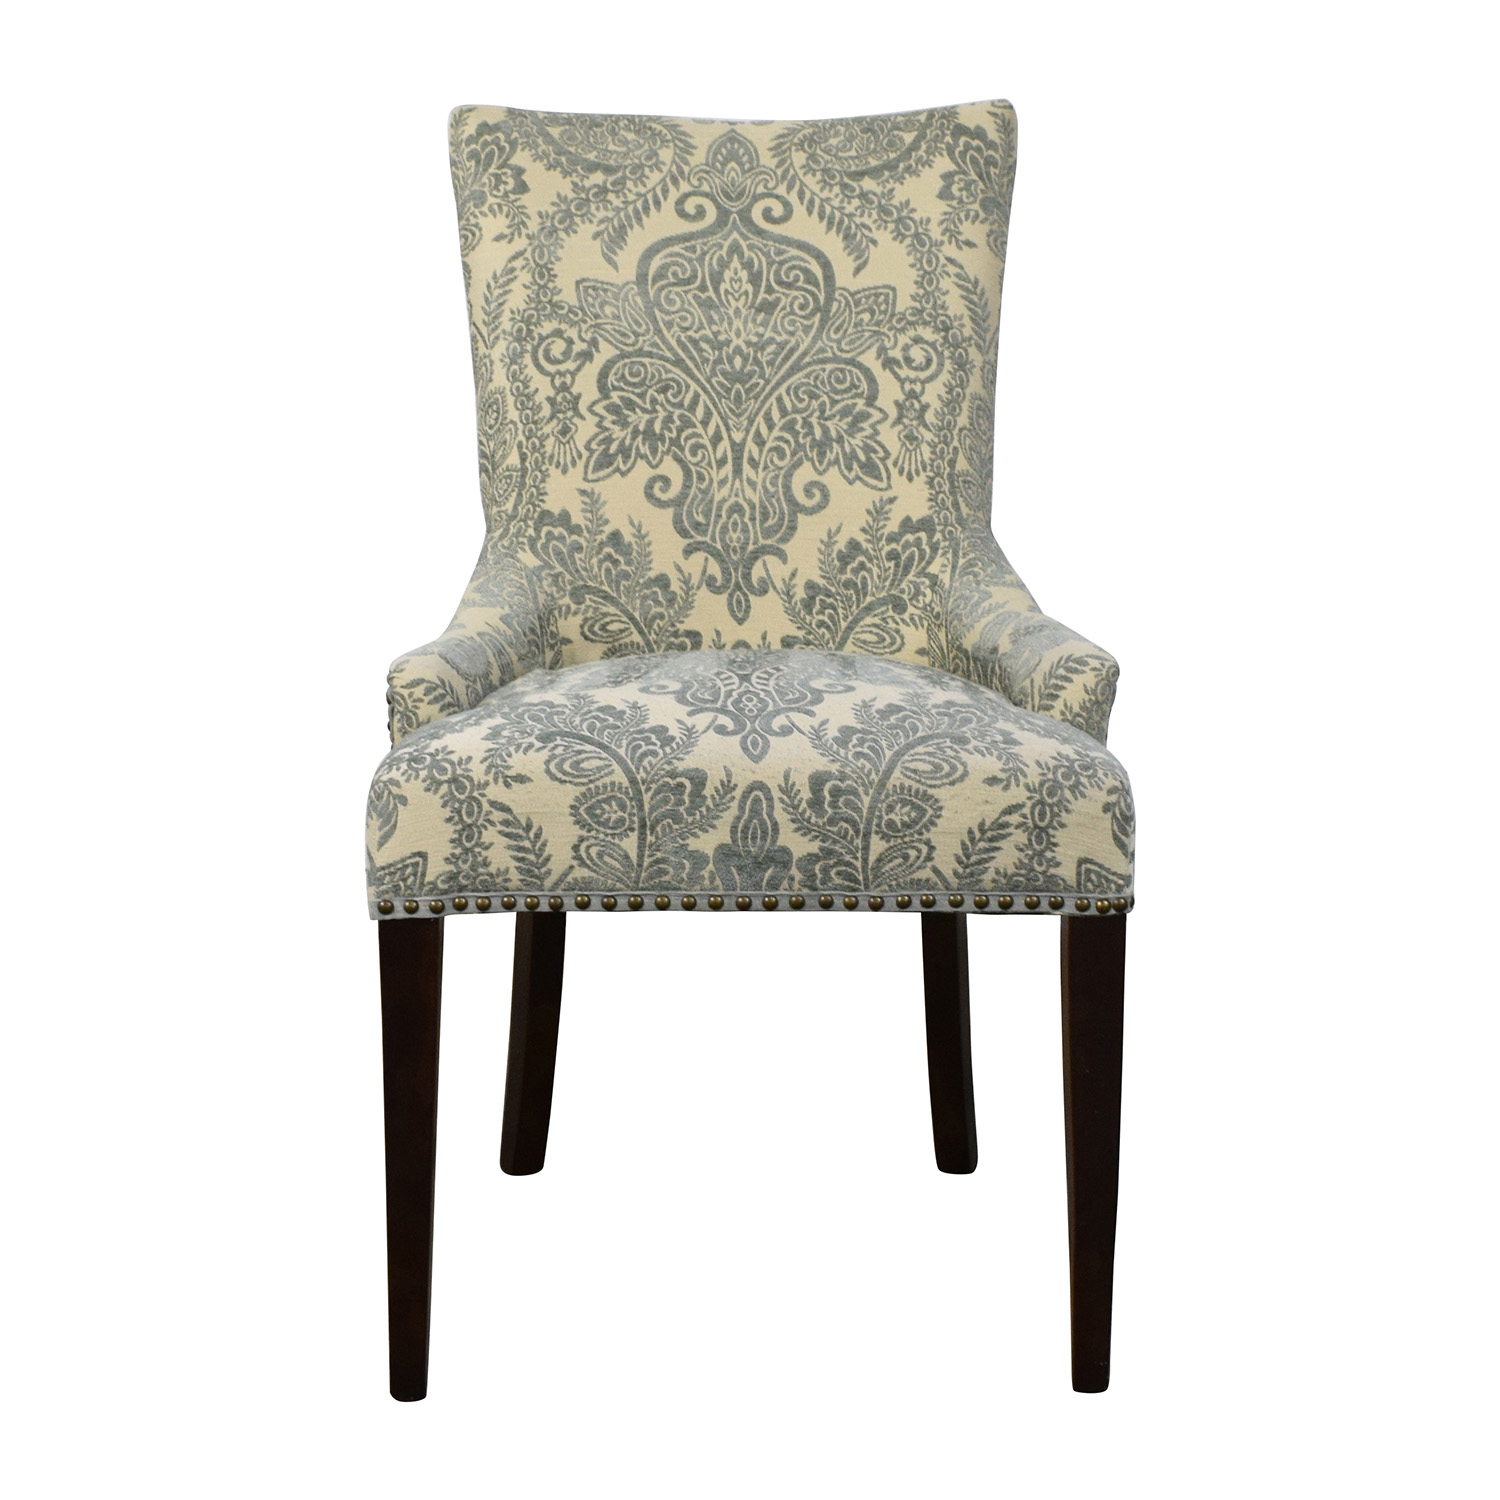 Pier One Dining Chairs: Pier 1 Pier 1 Imports Adelle Collection Smoke